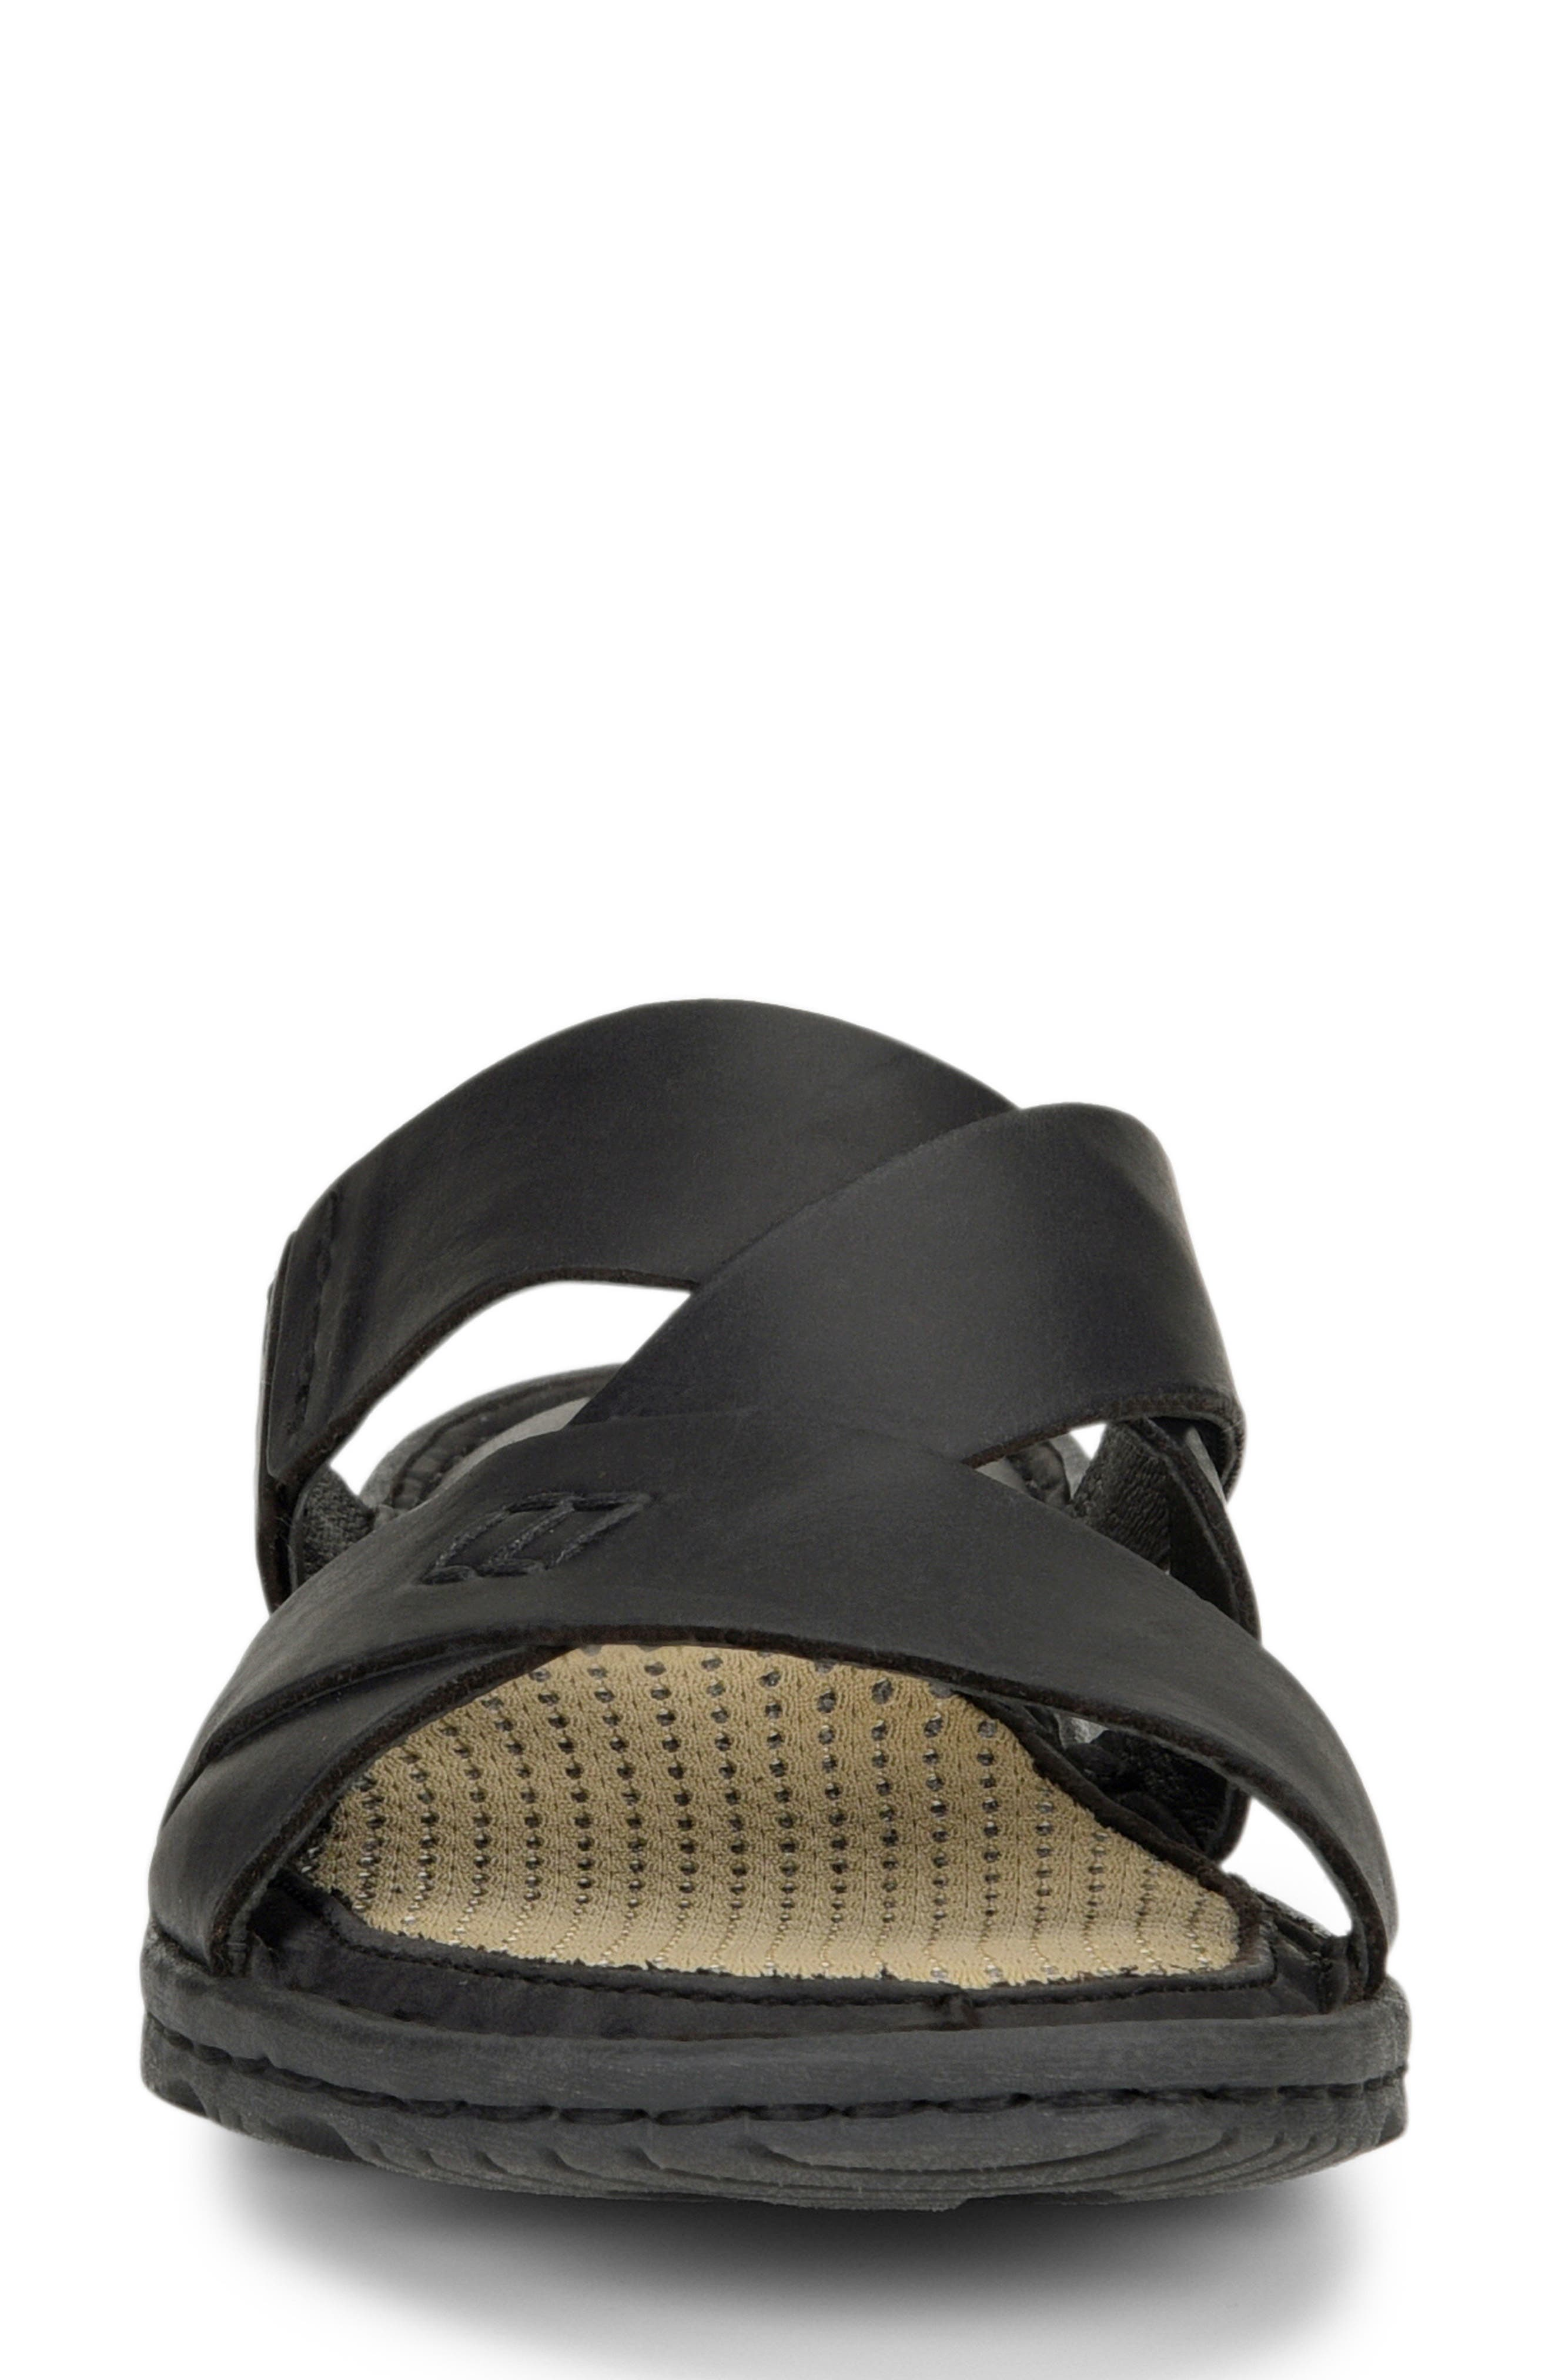 Hayka Asymmetrical Slide Sandal,                             Alternate thumbnail 4, color,                             BLACK LEATHER